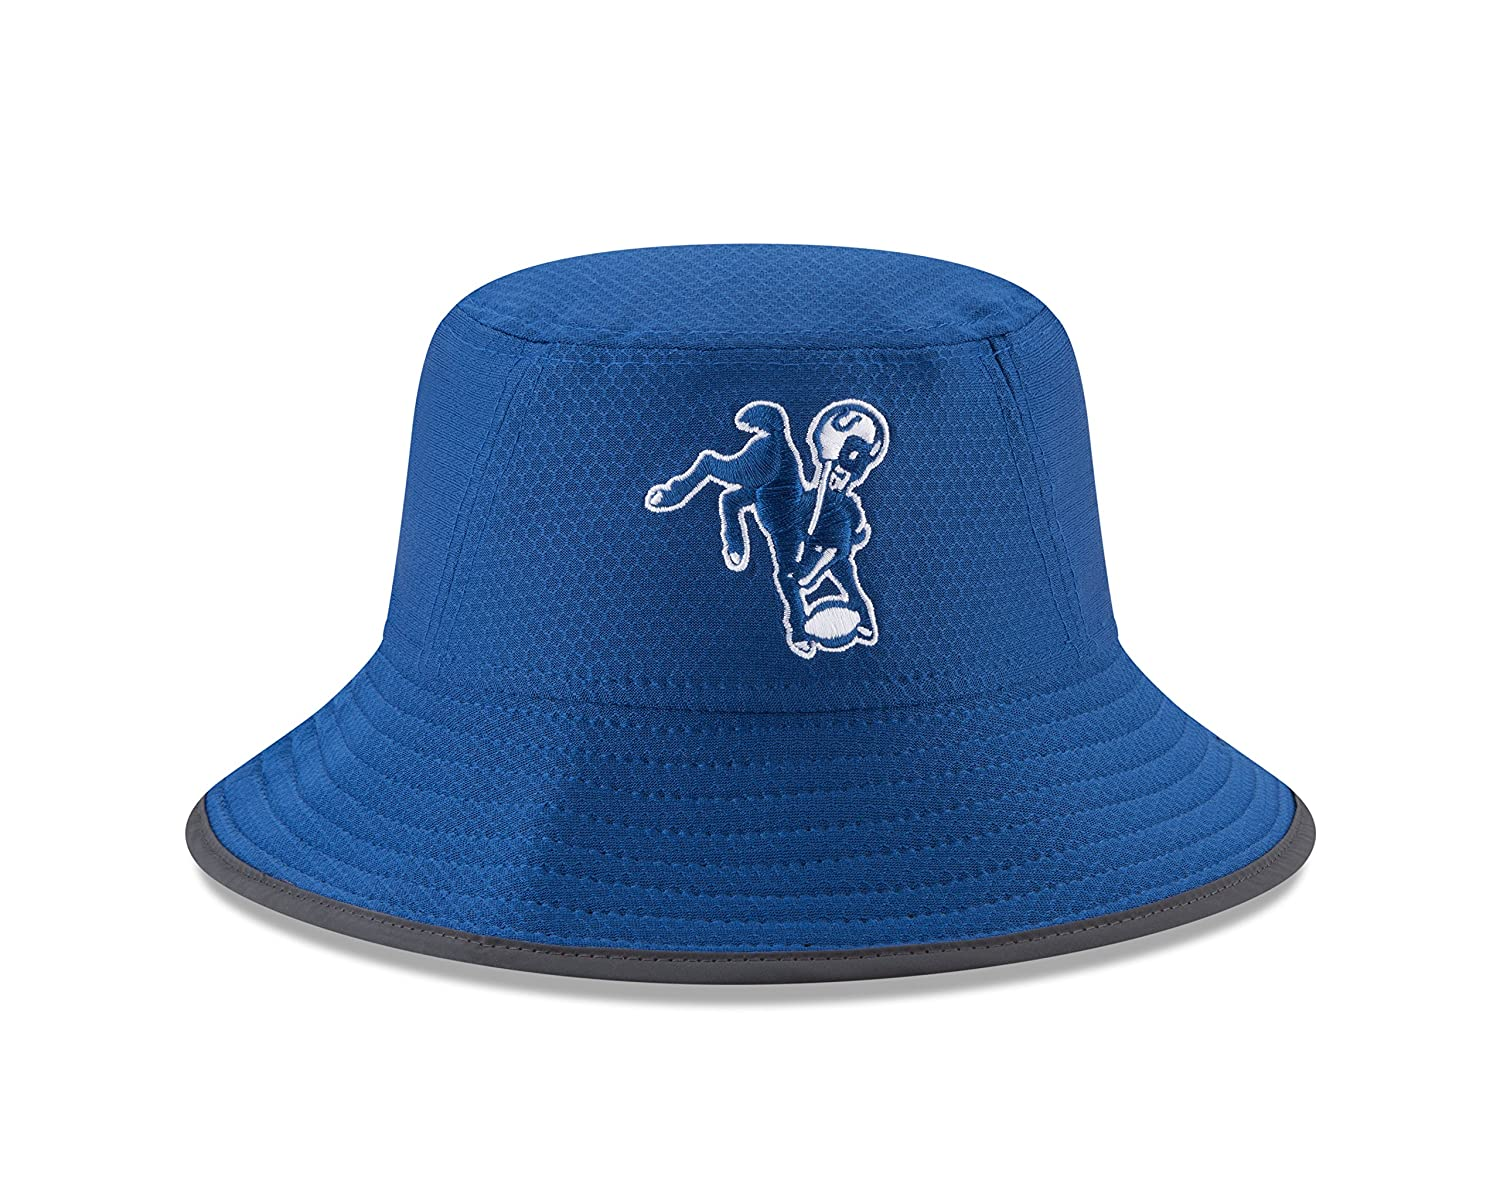 sports shoes fb444 c96b9 Amazon.com   Indianapolis Colts New Era 2017 Training Camp Official Bucket  Hat -Royal   Sports   Outdoors